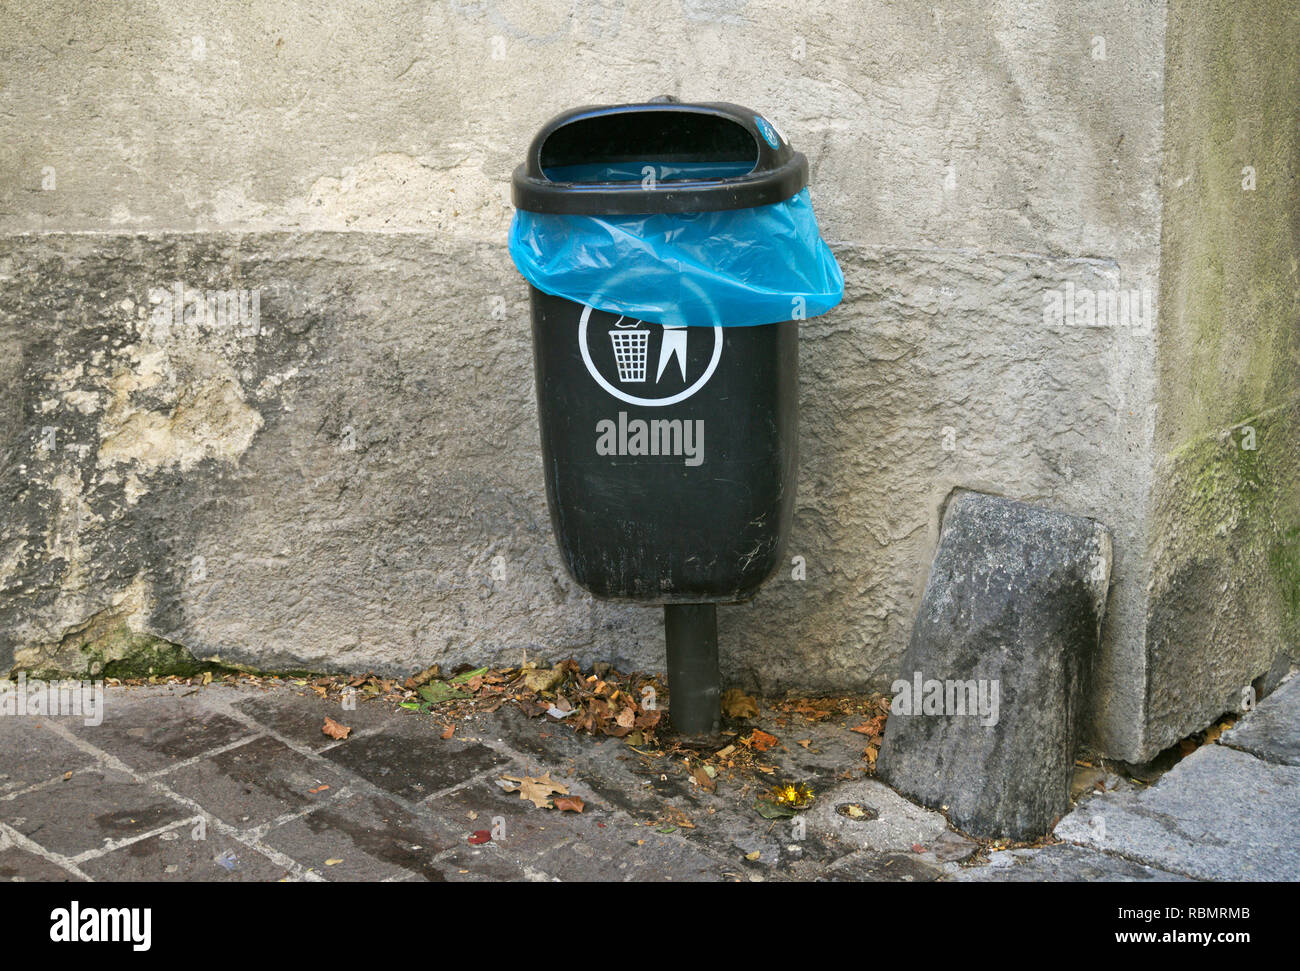 garbage bin on the street in Italy - Stock Image